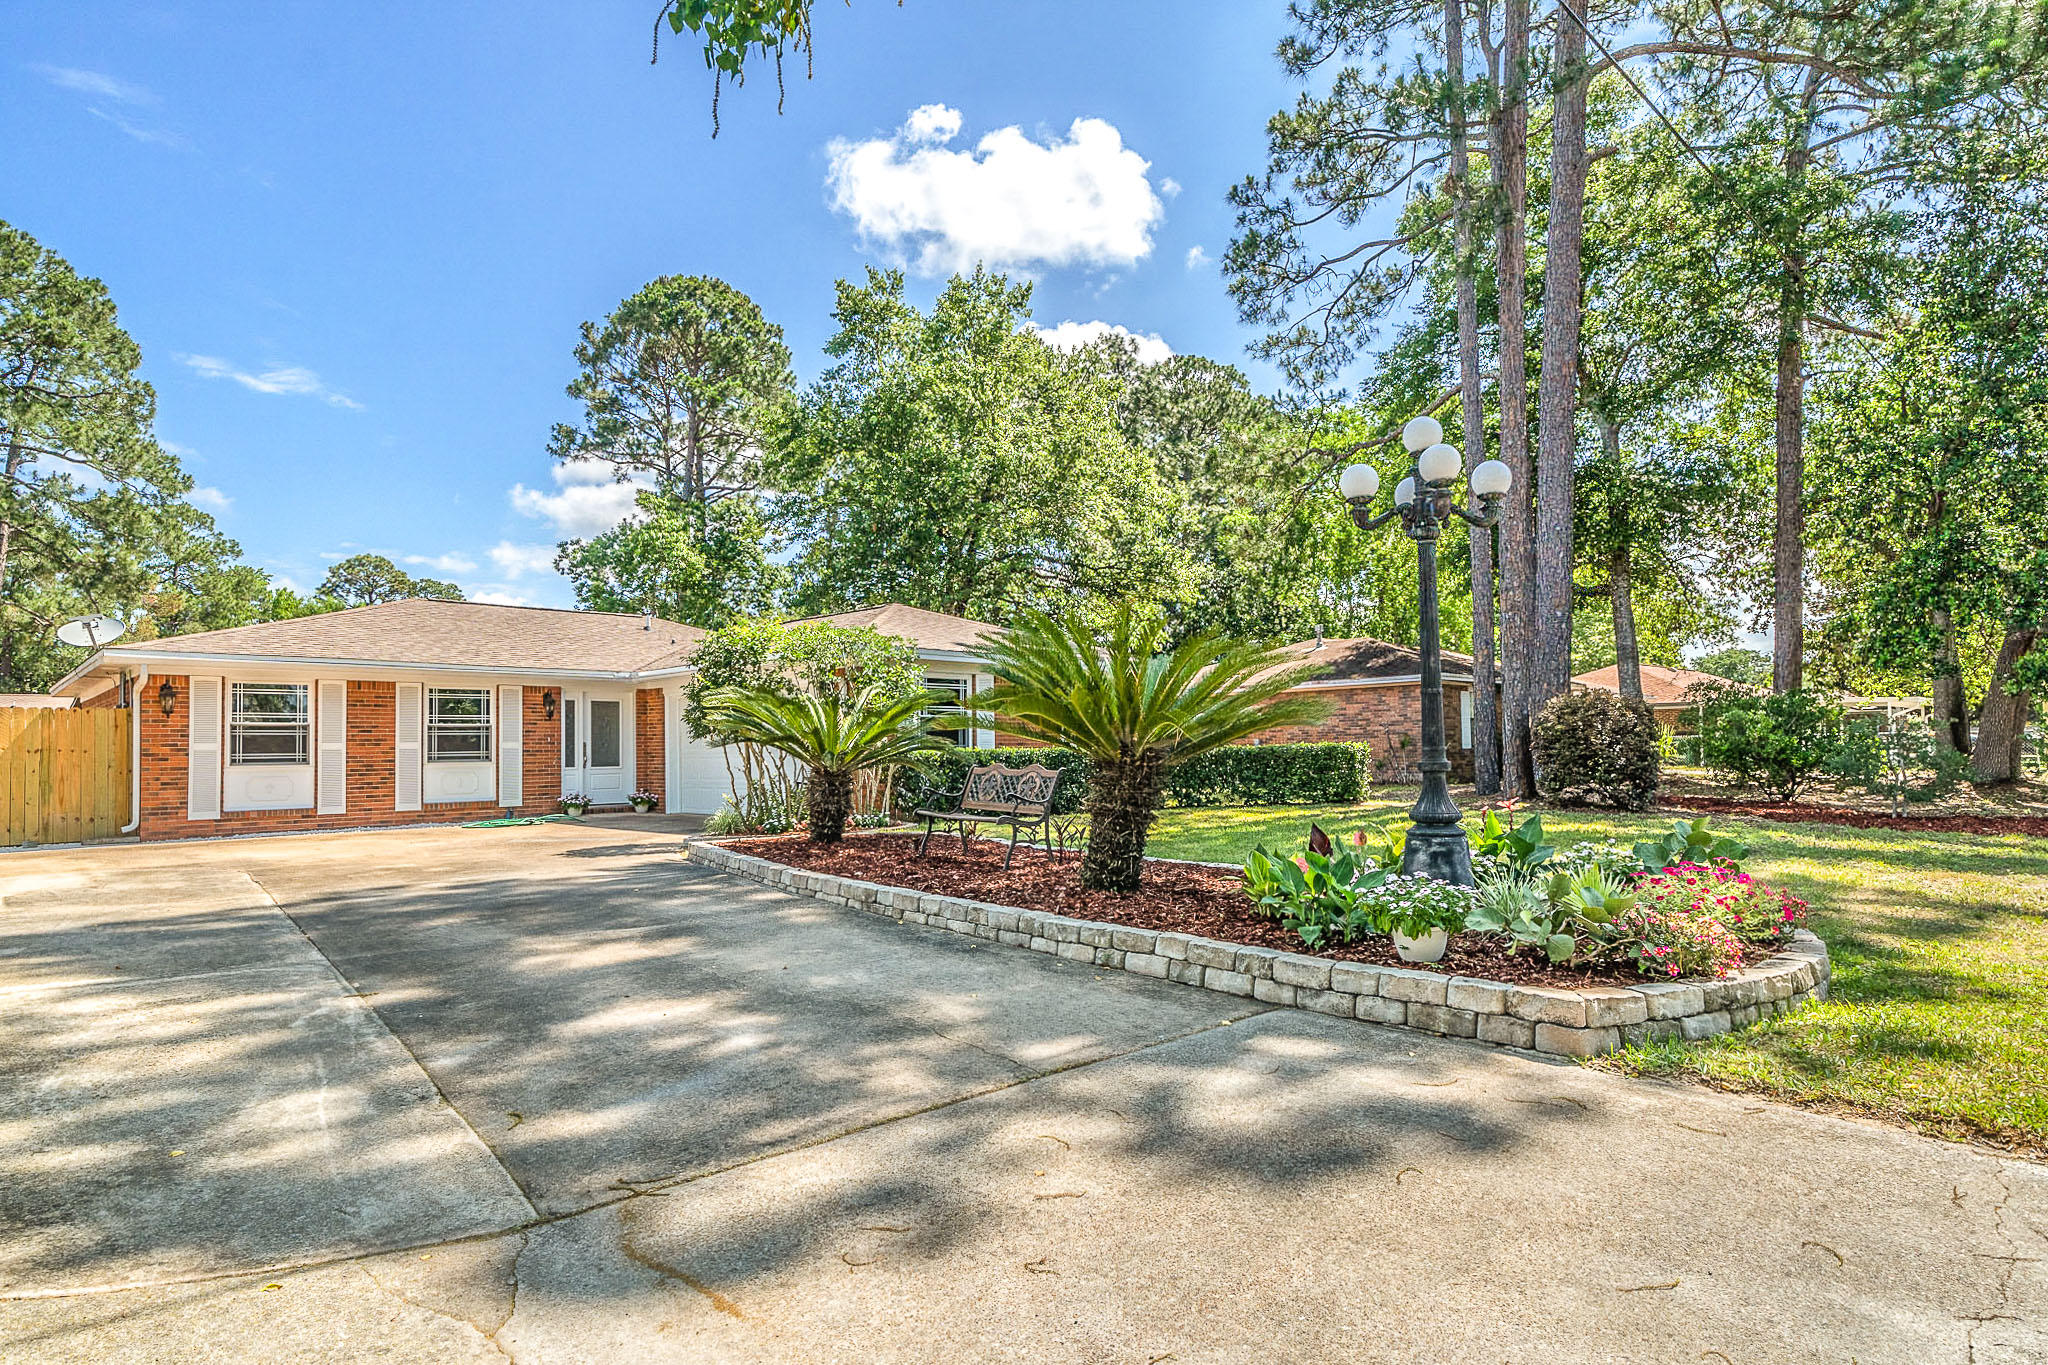 A 3 Bedroom 2 Bedroom The Niceville Pines Home